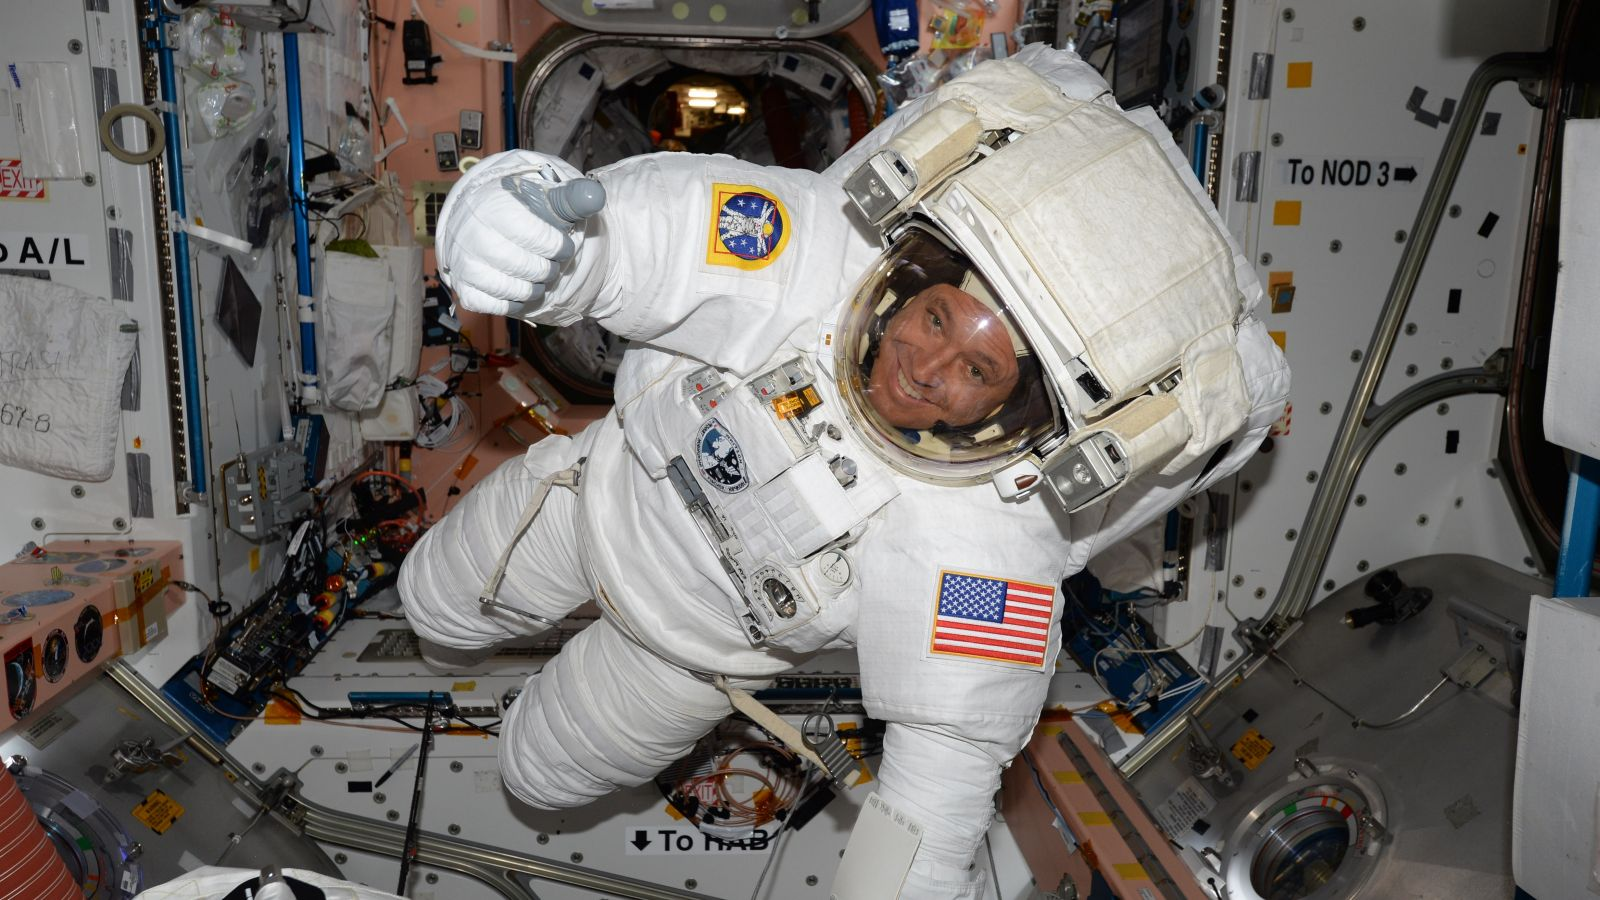 Equipment water leak stalls spacewalk by 2 US astronauts